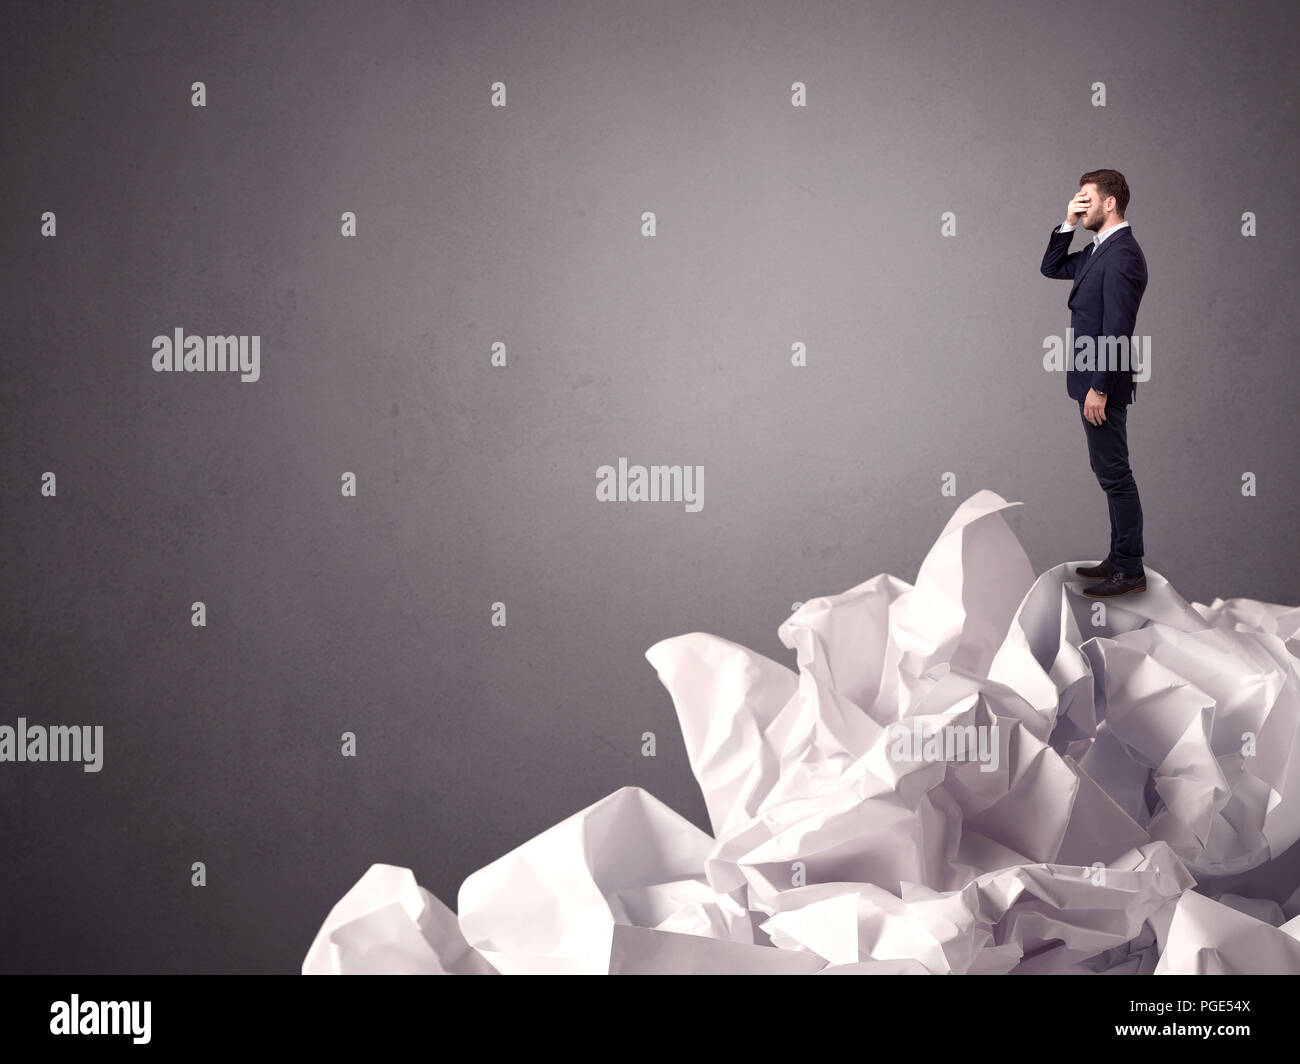 Thoughtful young businessman standing on a pile of crumpled paper with a grungy grey background - Stock Image